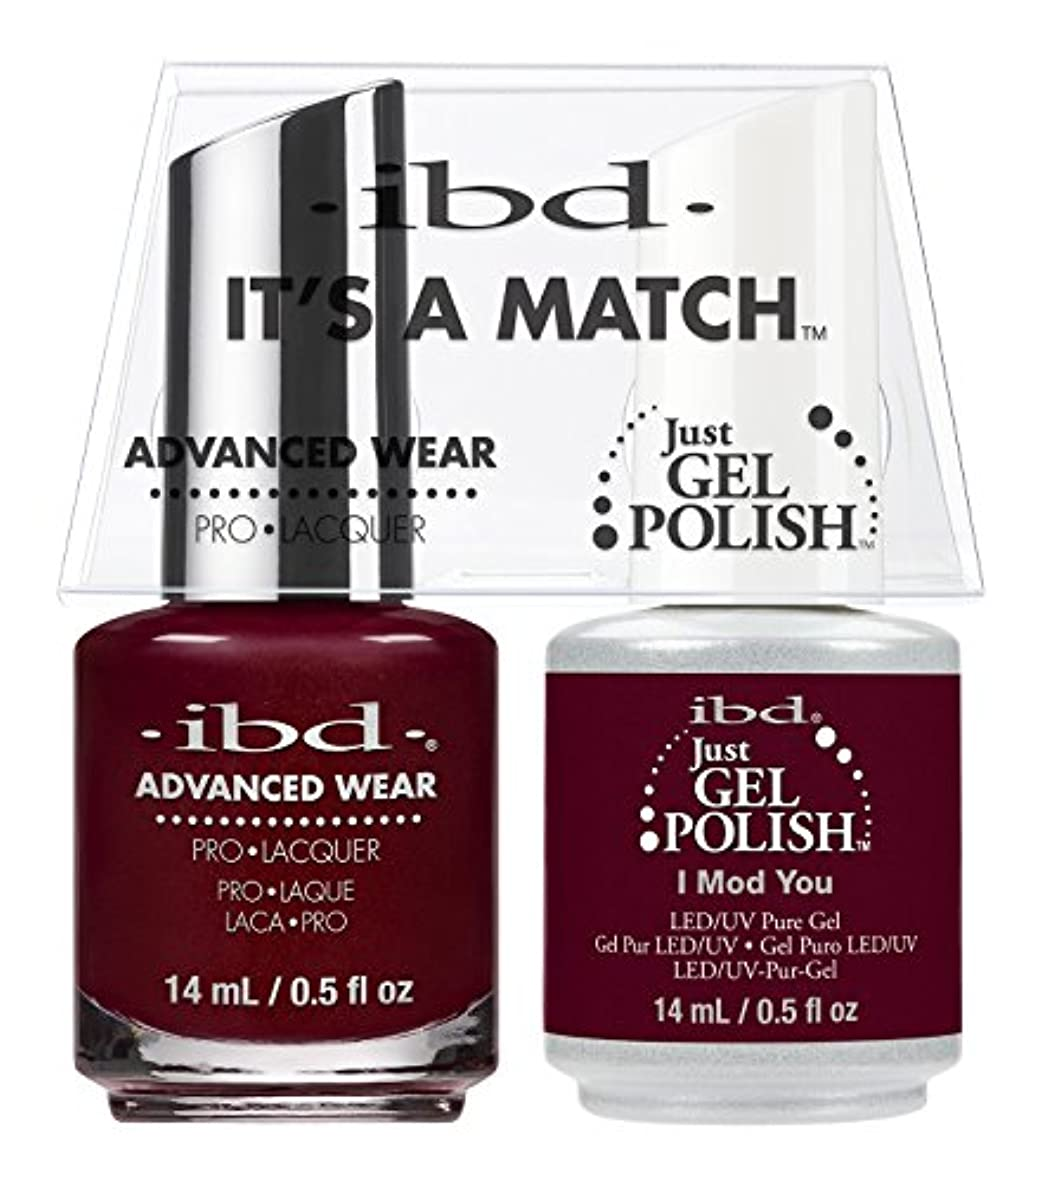 書誌コンチネンタル案件ibd - It's A Match -Duo Pack- I Mod You - 14 mL / 0.5 oz Each